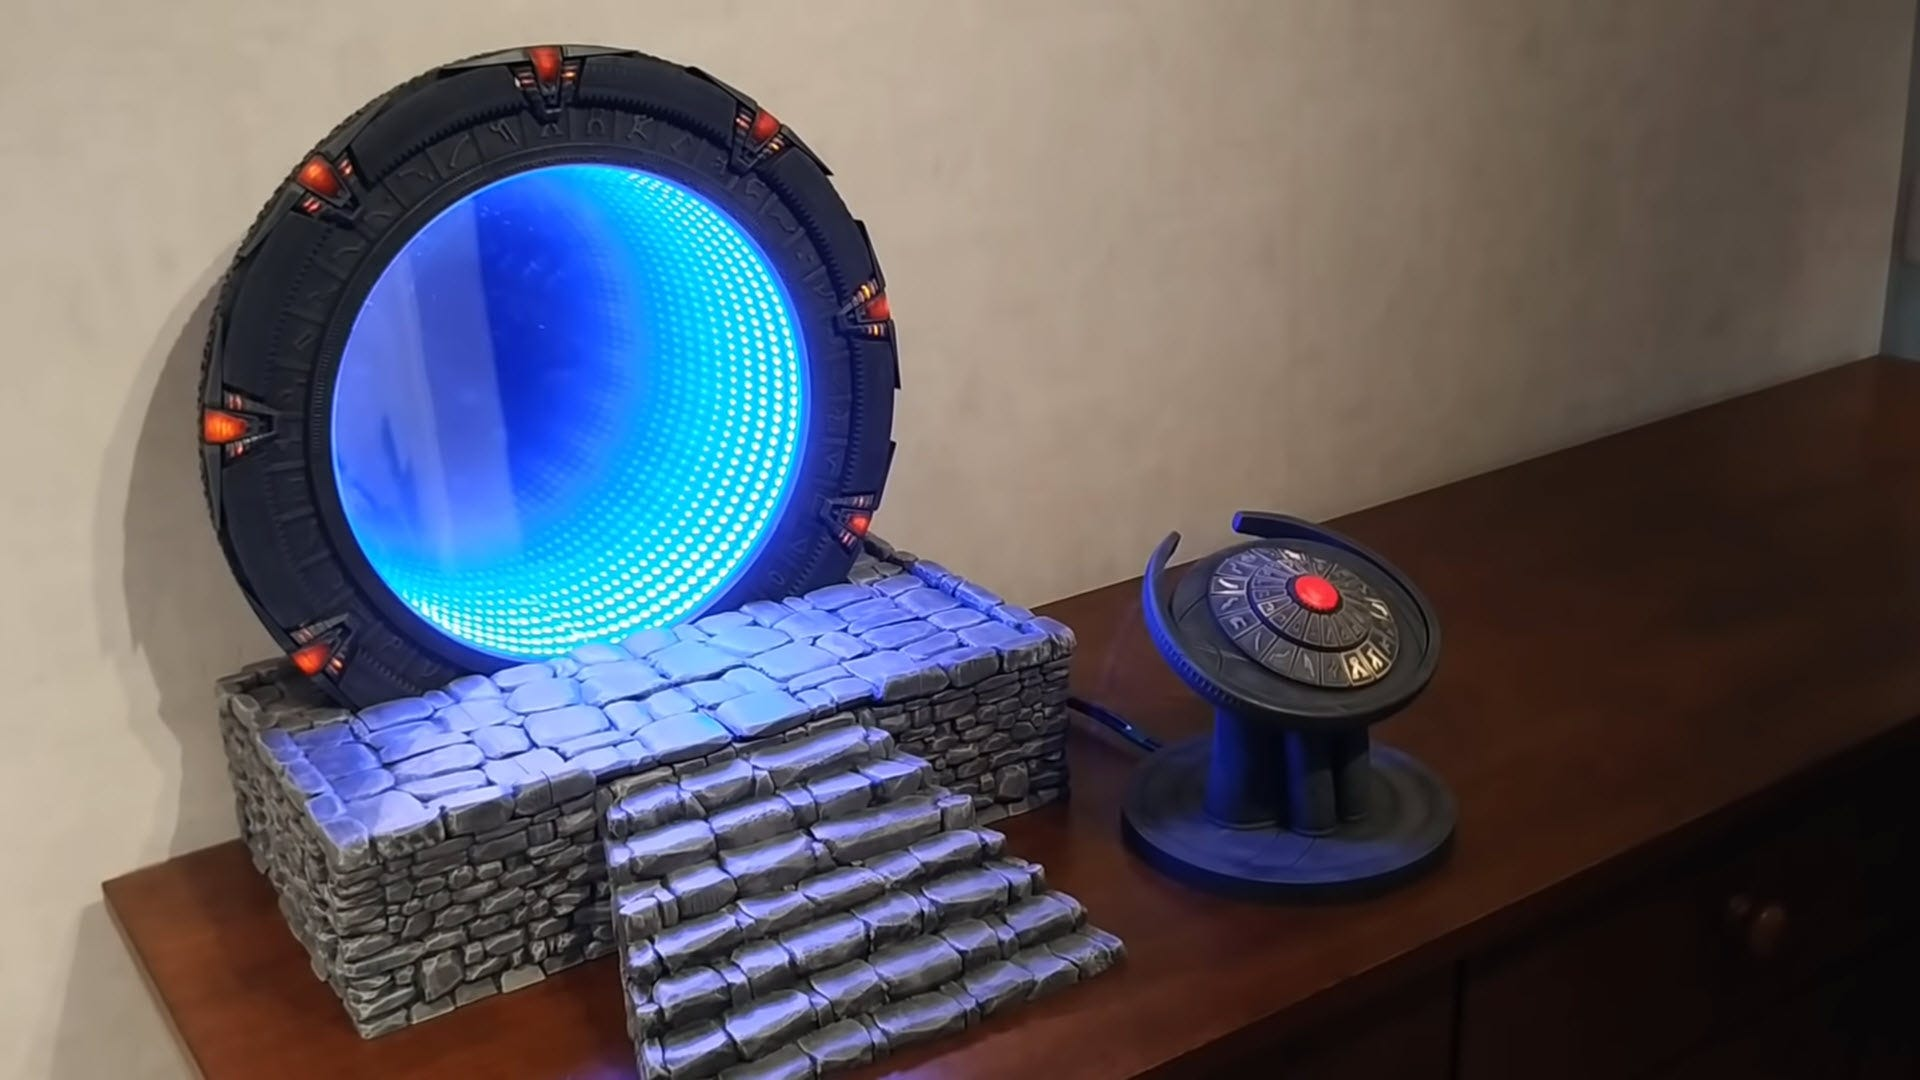 Check Out This Raspberry Pi-Powered Stargate with Working Lights and Sounds thumbnail